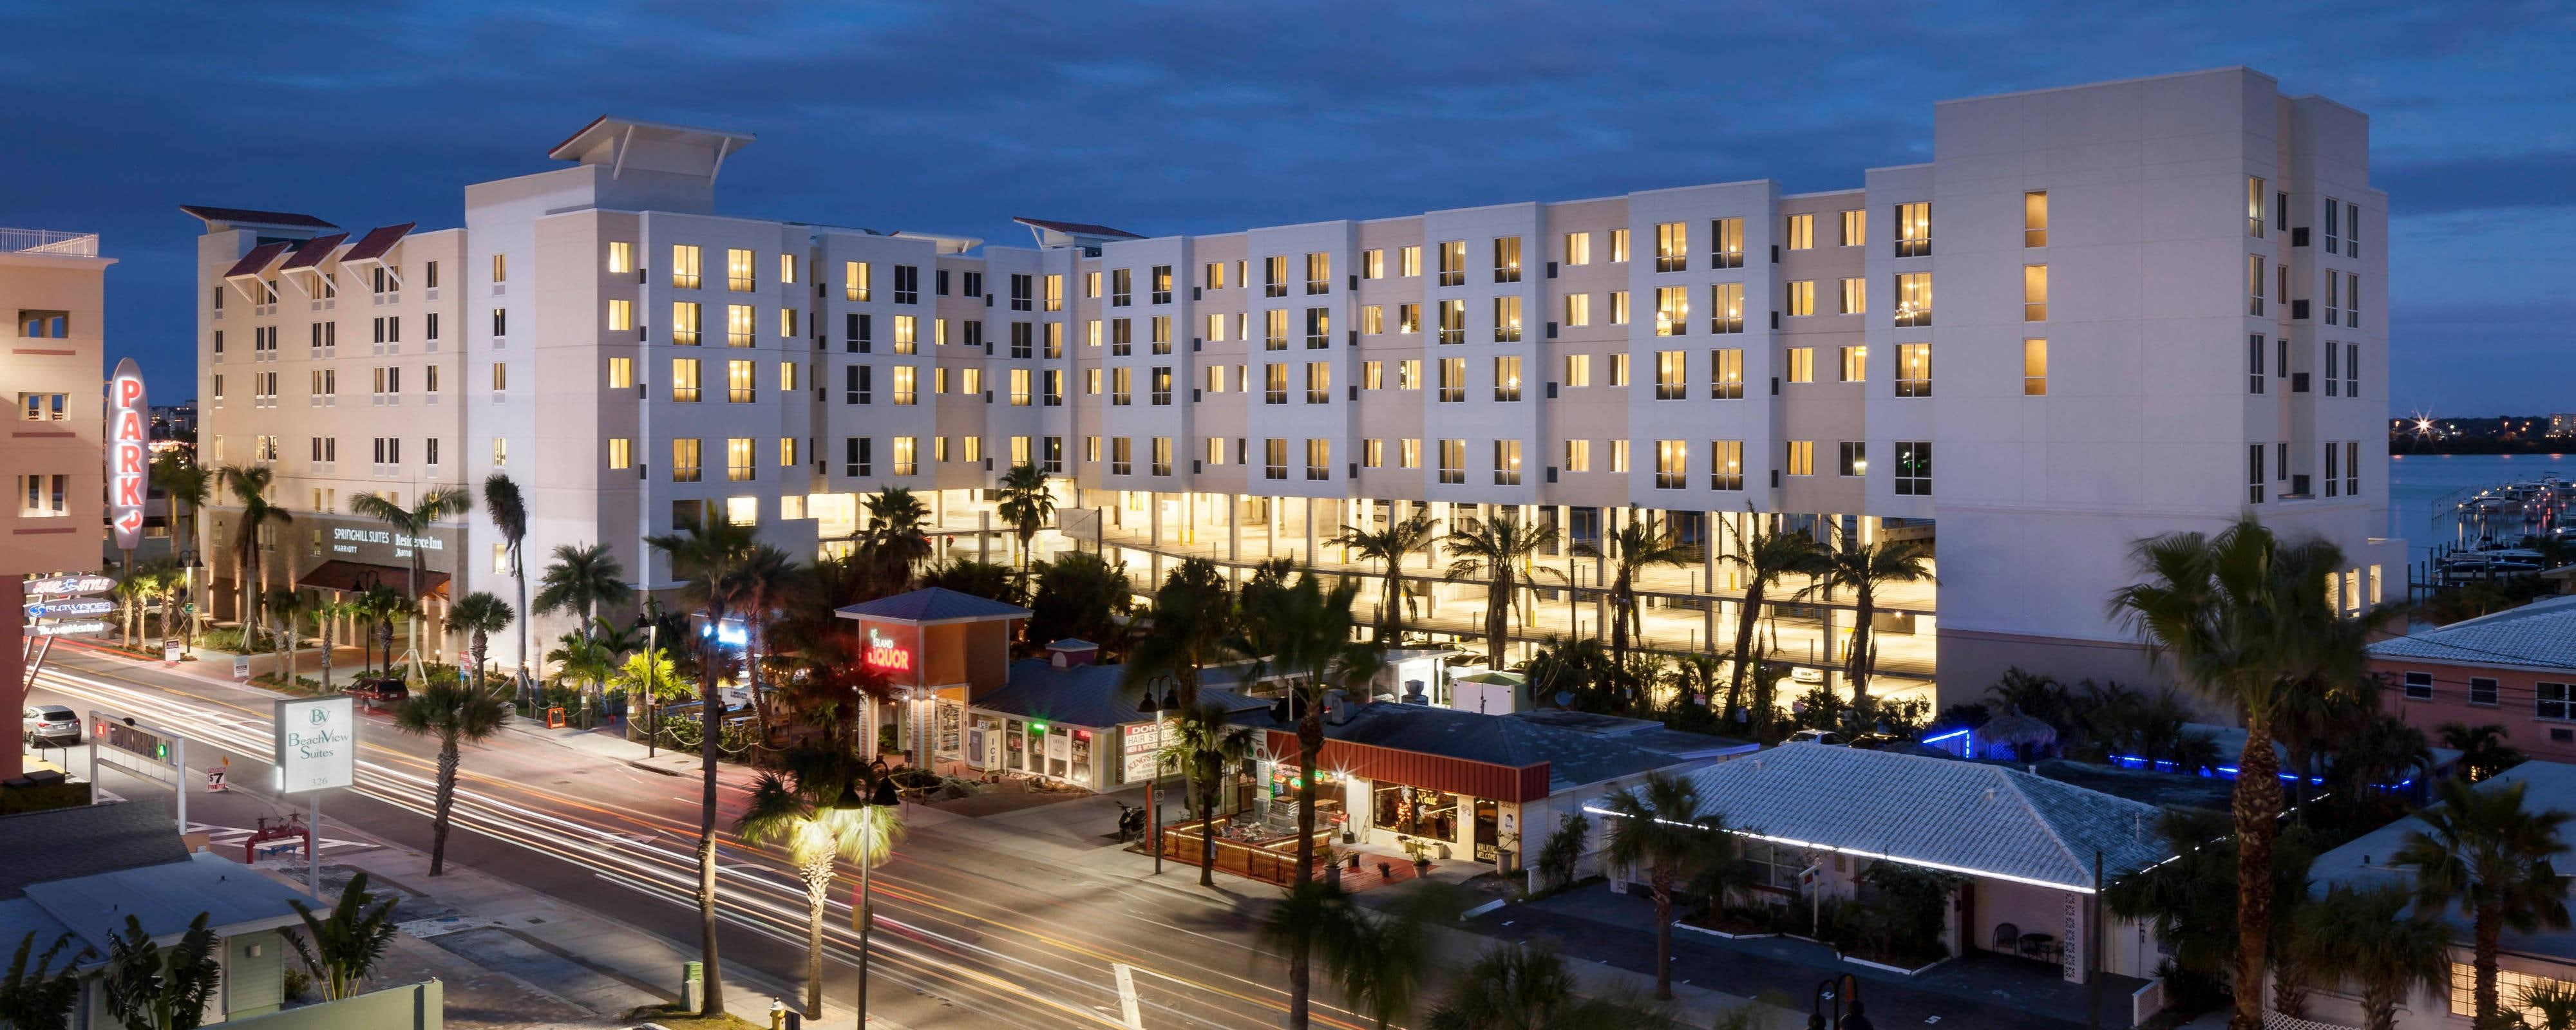 Hotels In Clearwater Beach Florida Residence Inn Clearwater Beach